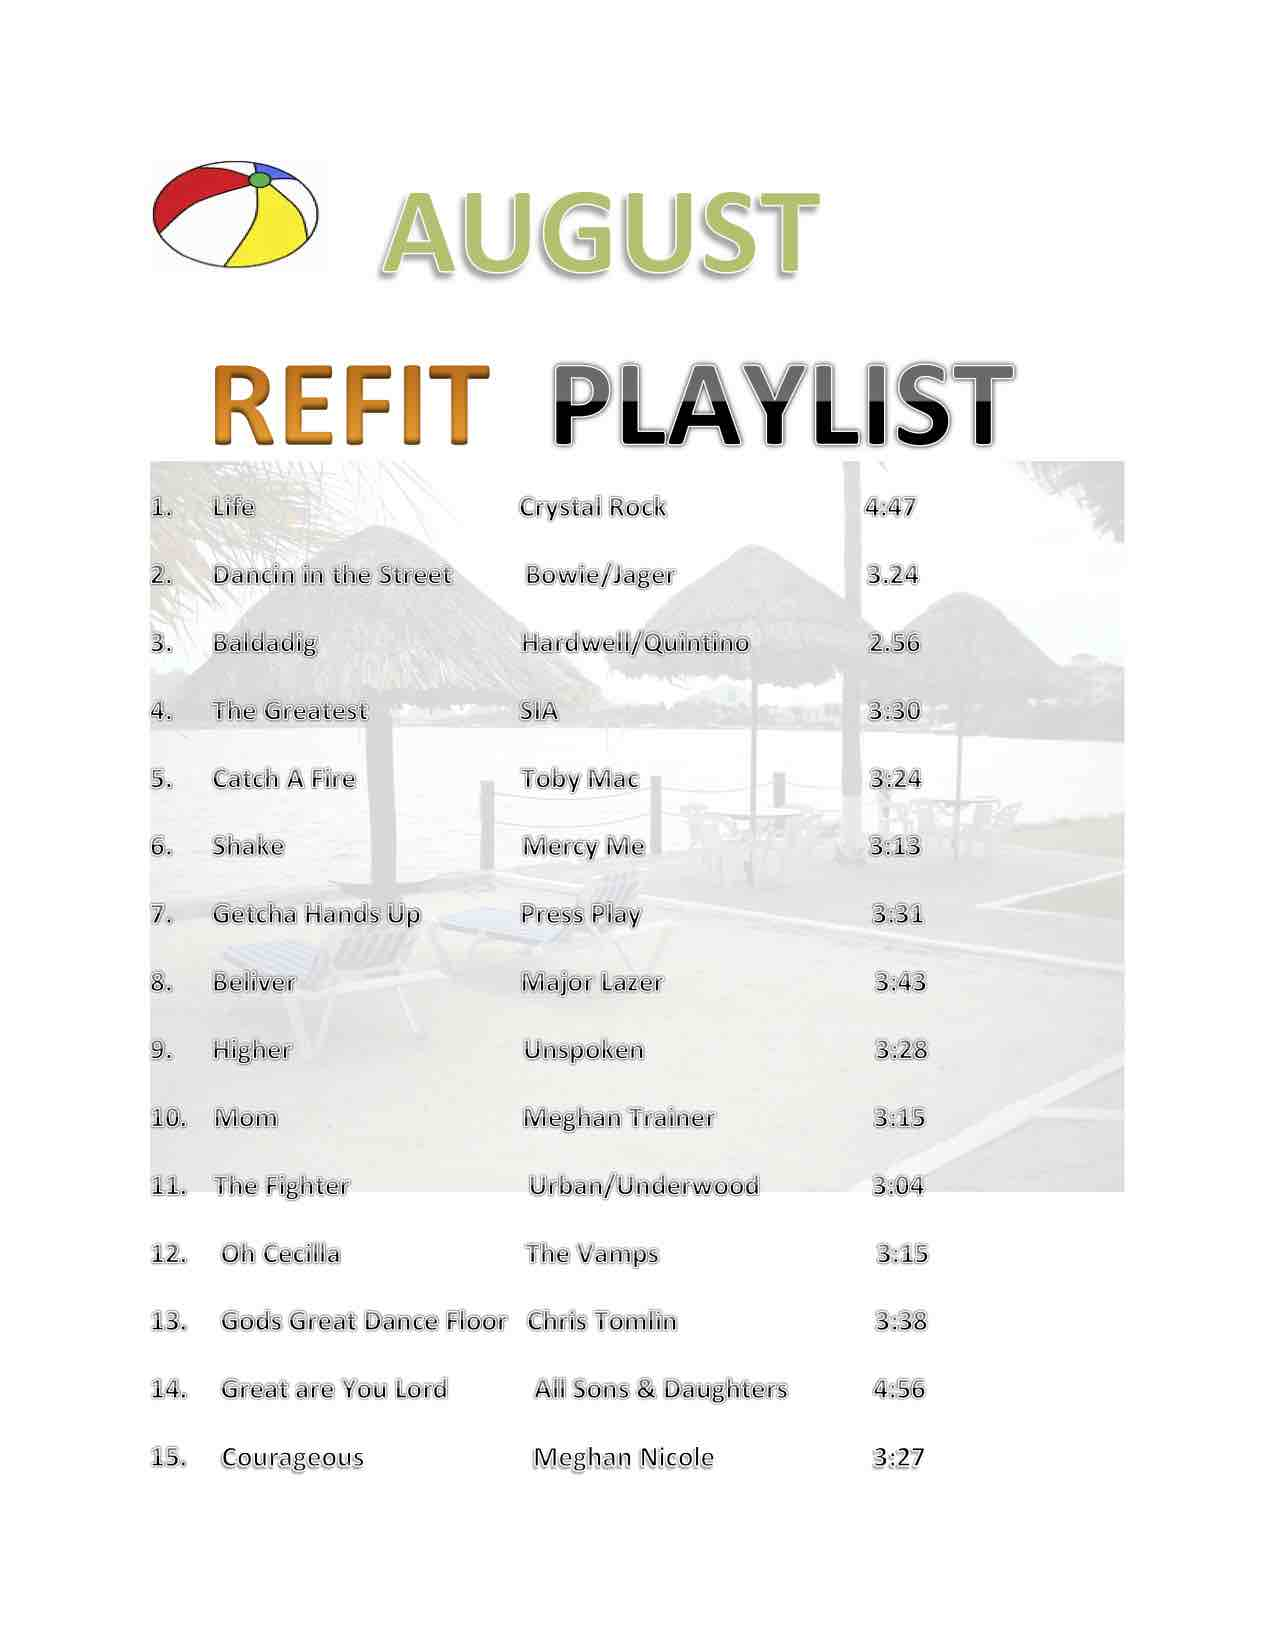 August REFIT play list